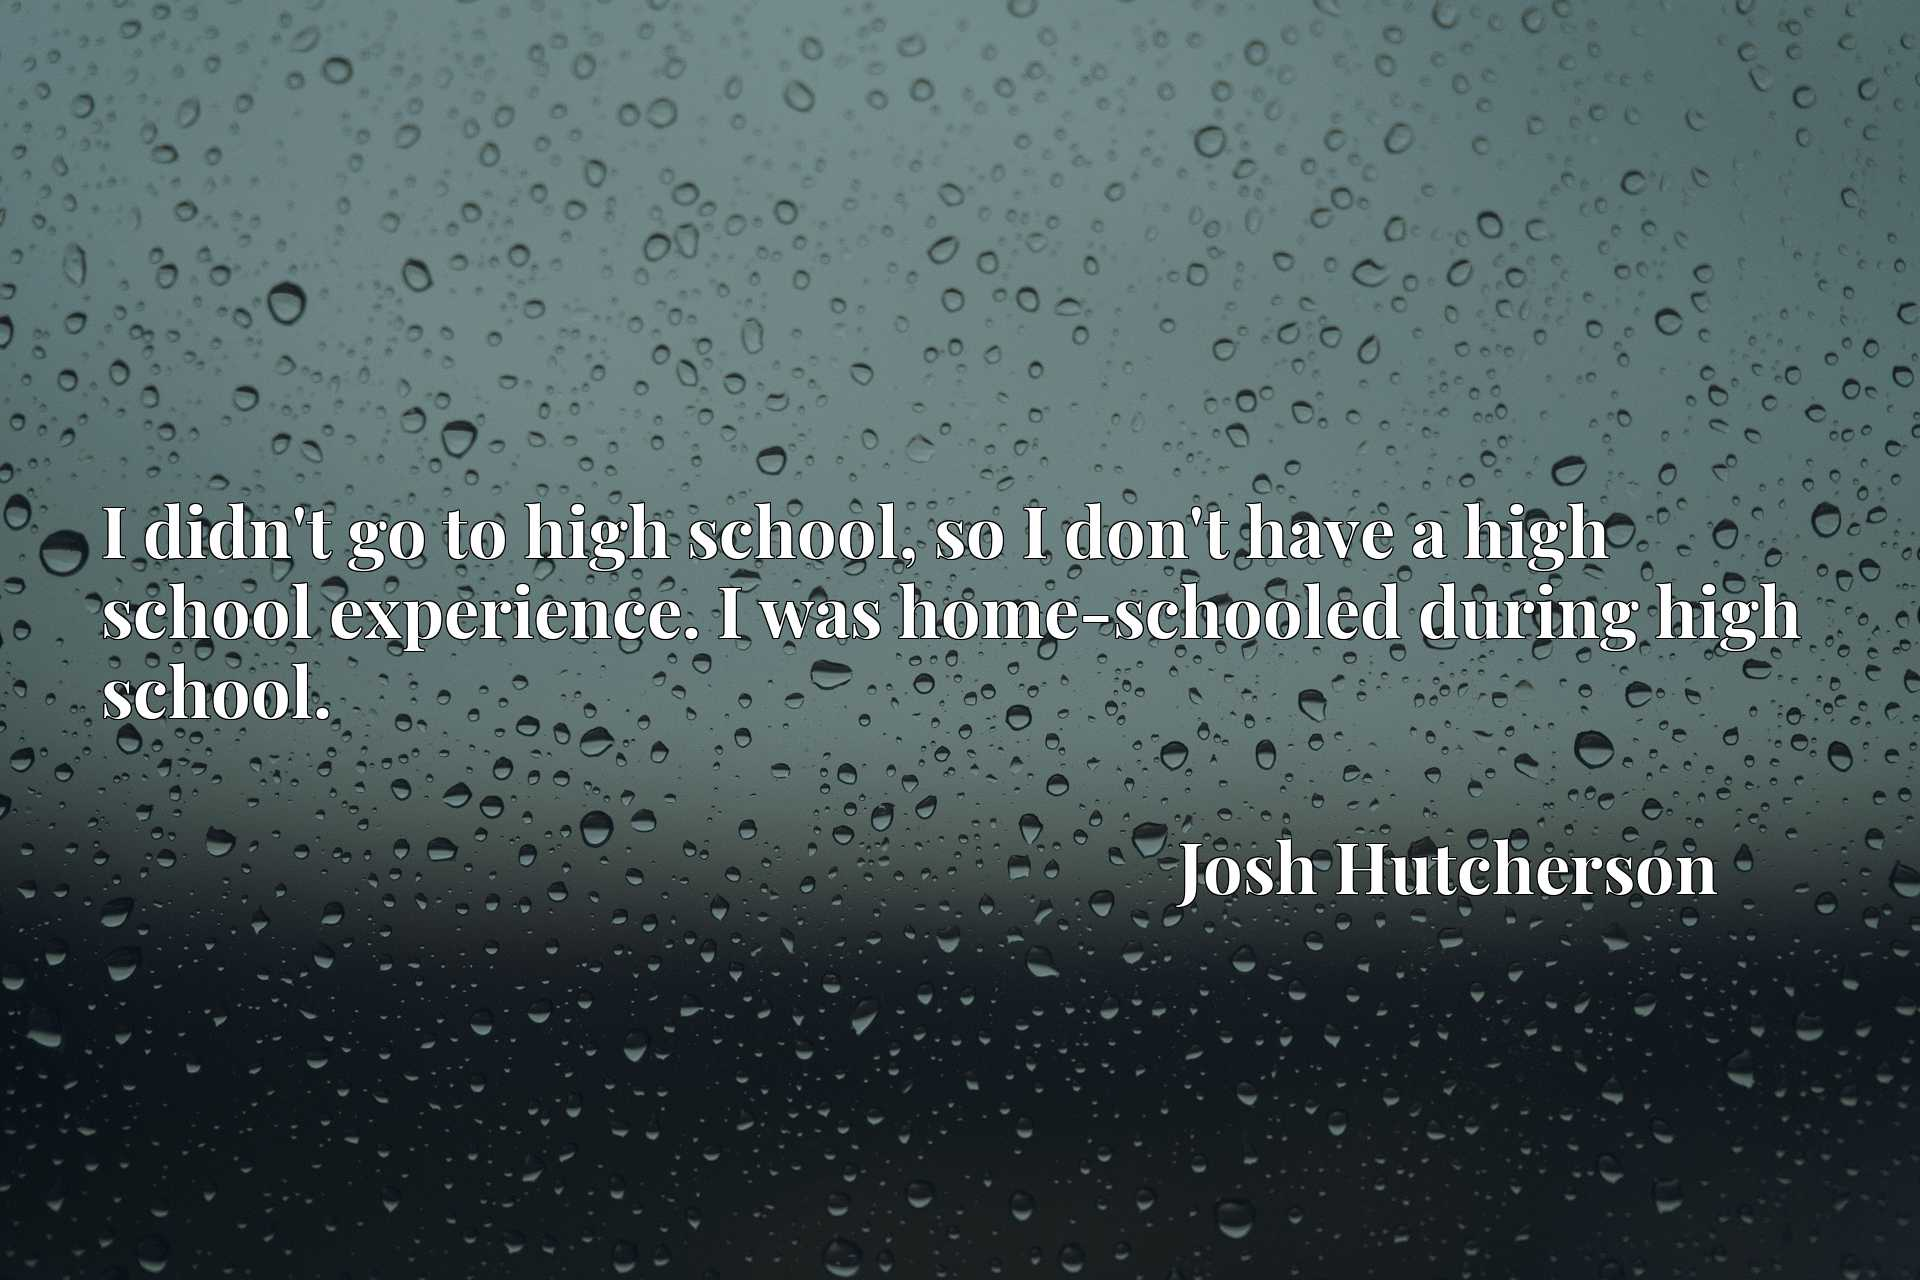 I didn't go to high school, so I don't have a high school experience. I was home-schooled during high school.